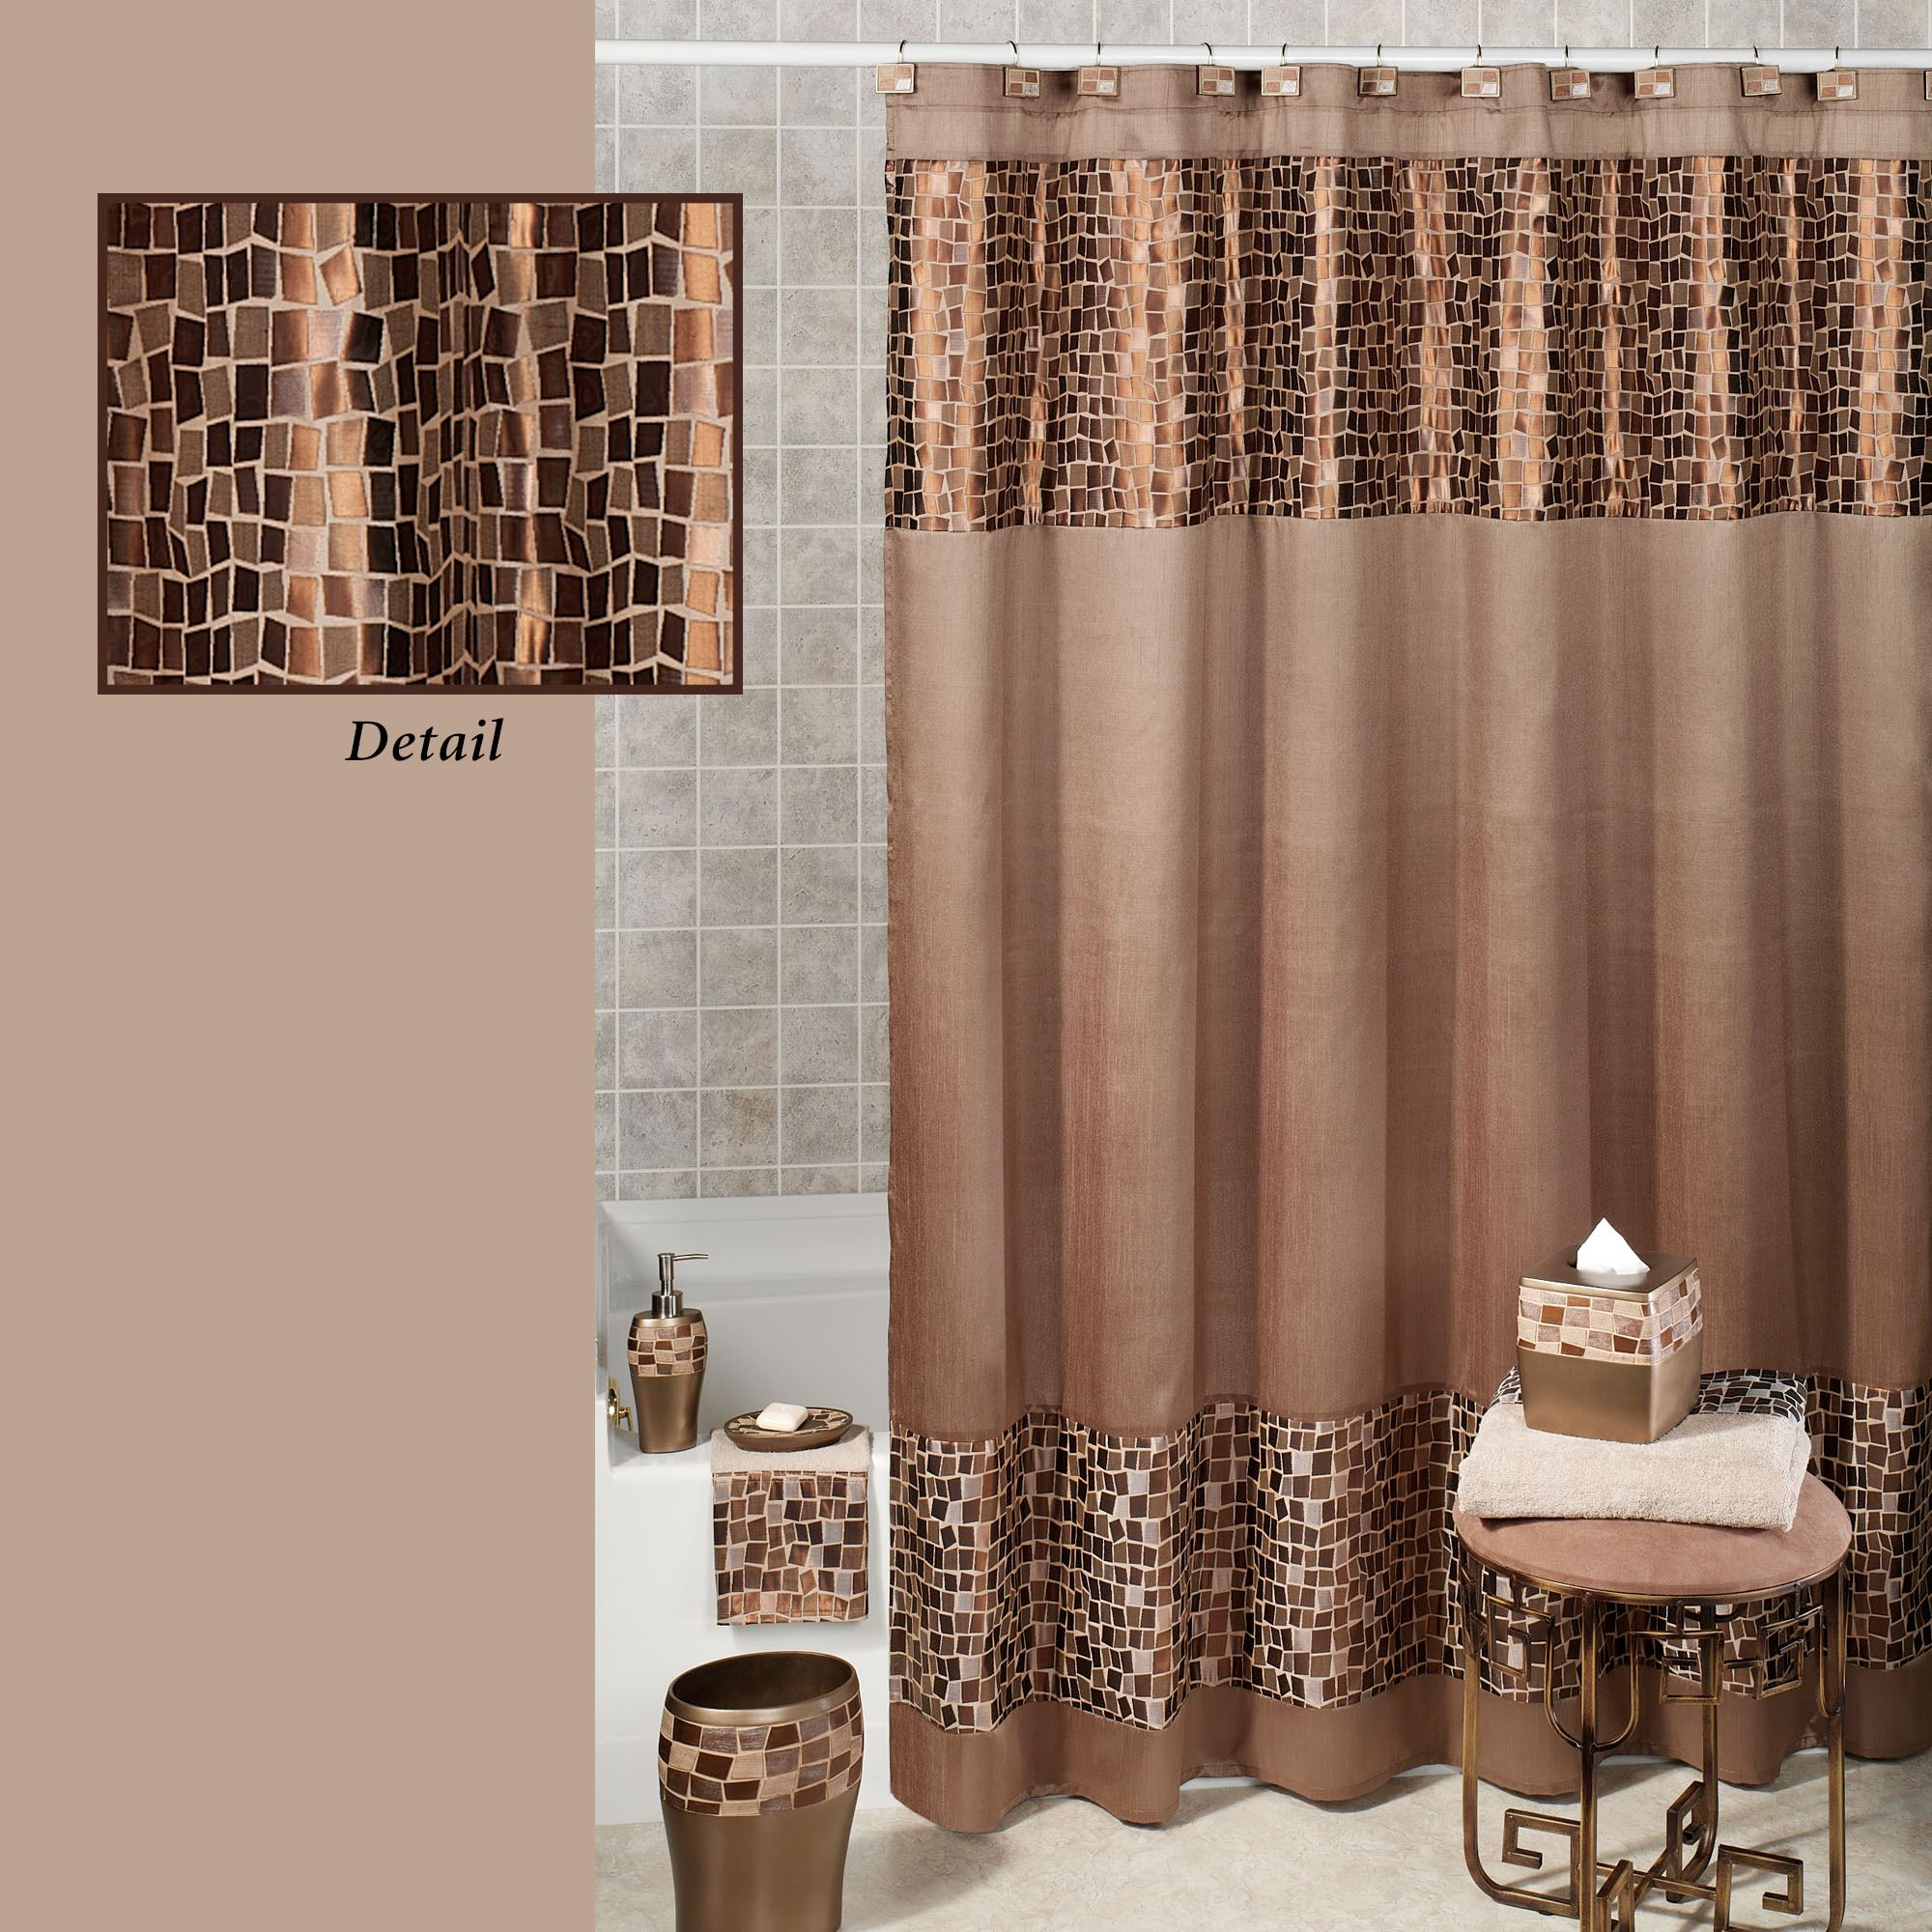 curtain hei bathroom b rivulets anthropologie curtains modern unique shower boho